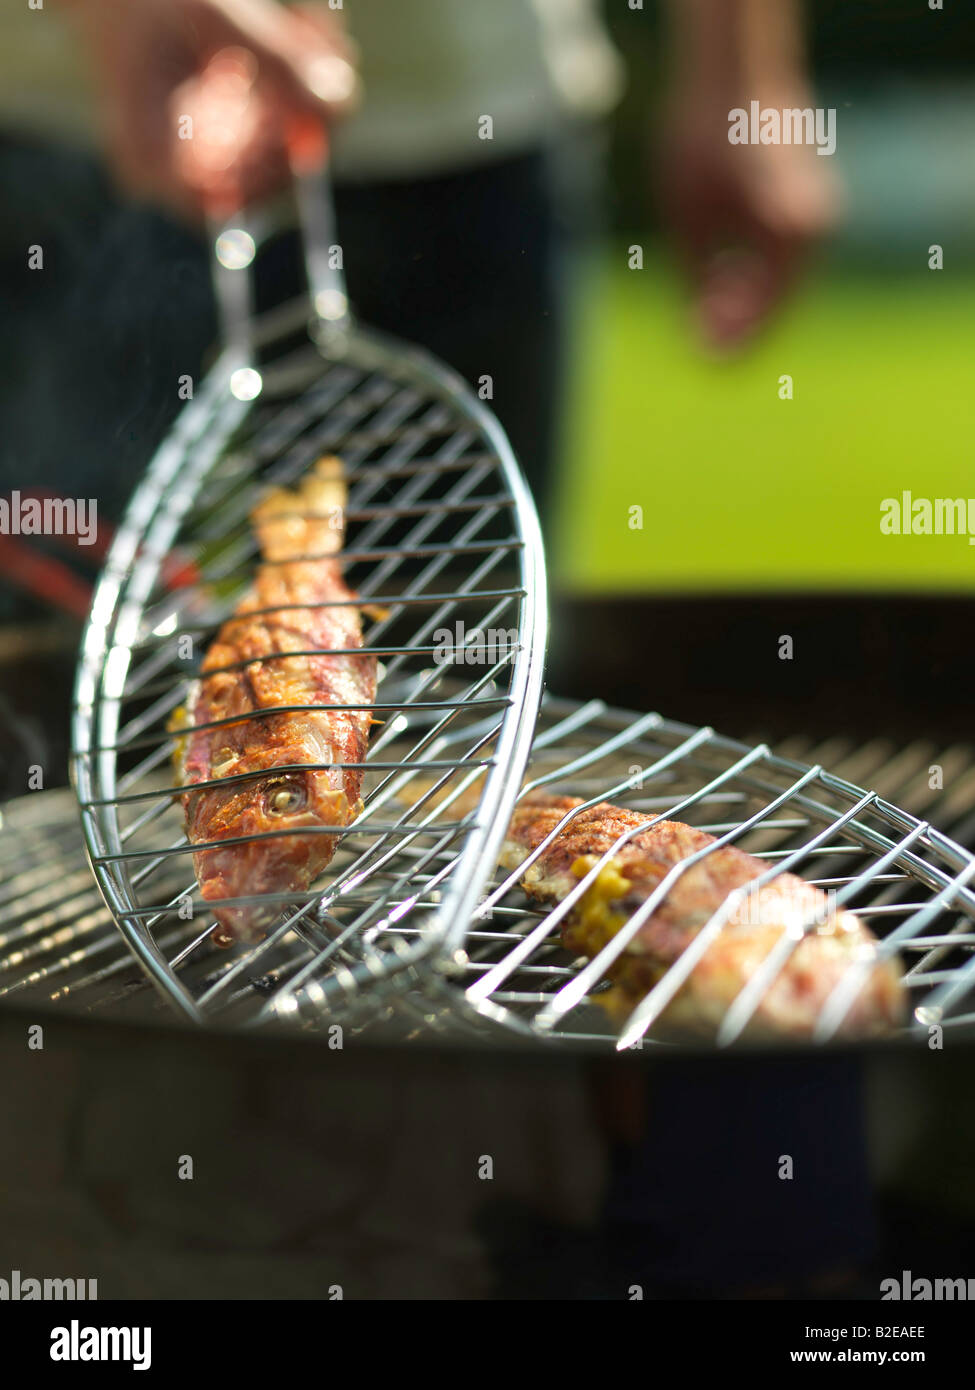 Close-up of fish on barbecue grill - Stock Image